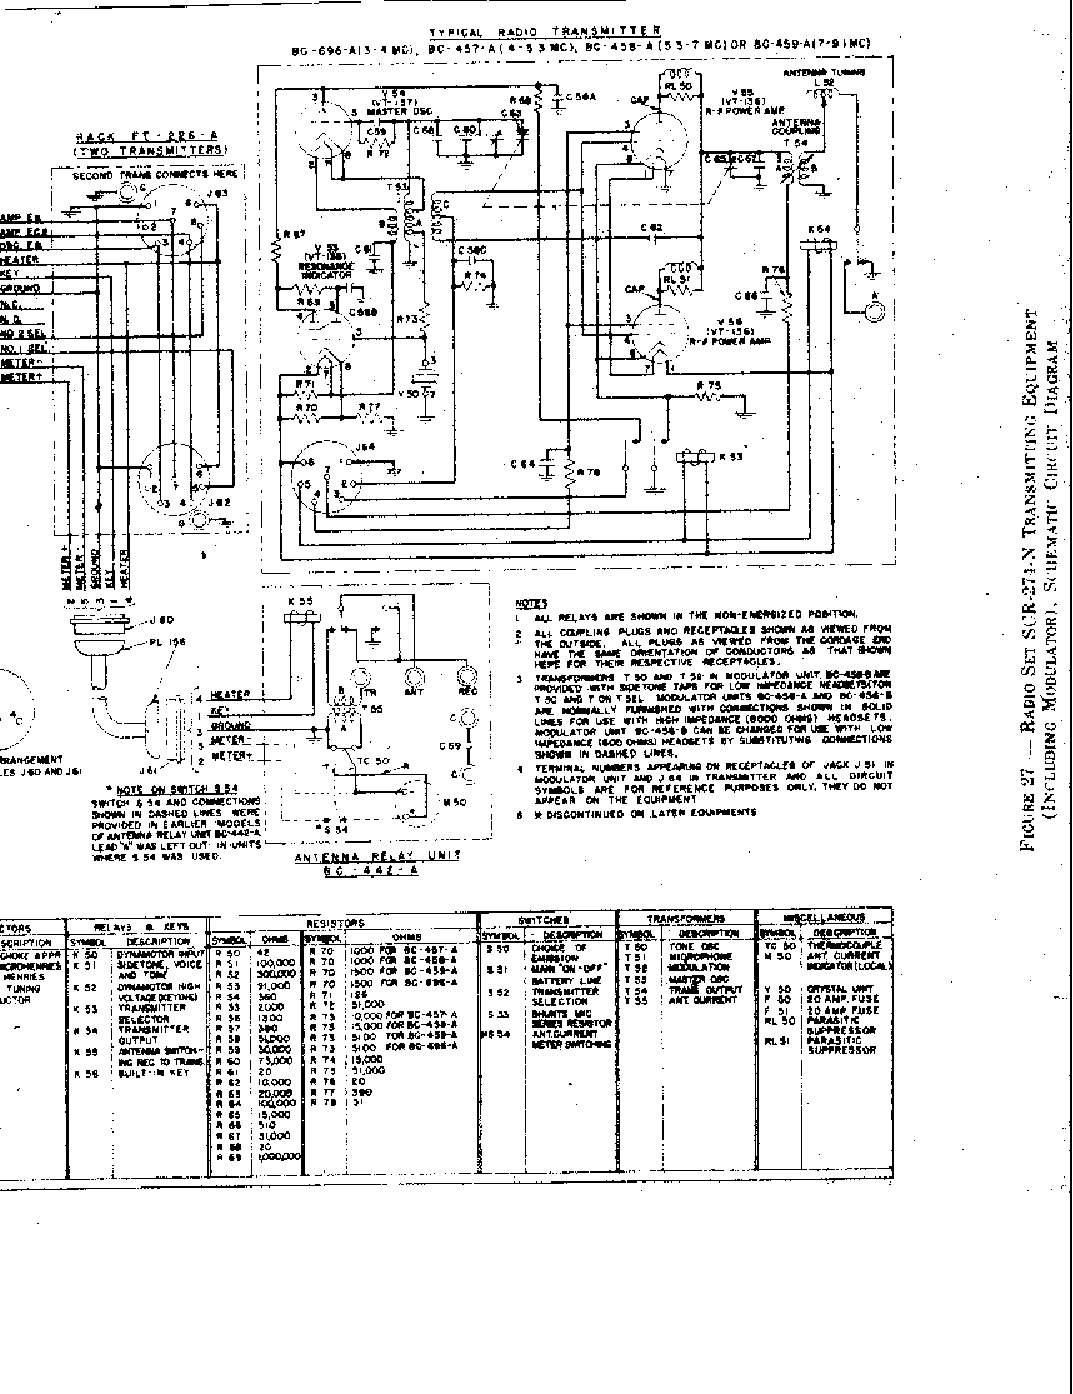 Dell Laptop Schematics